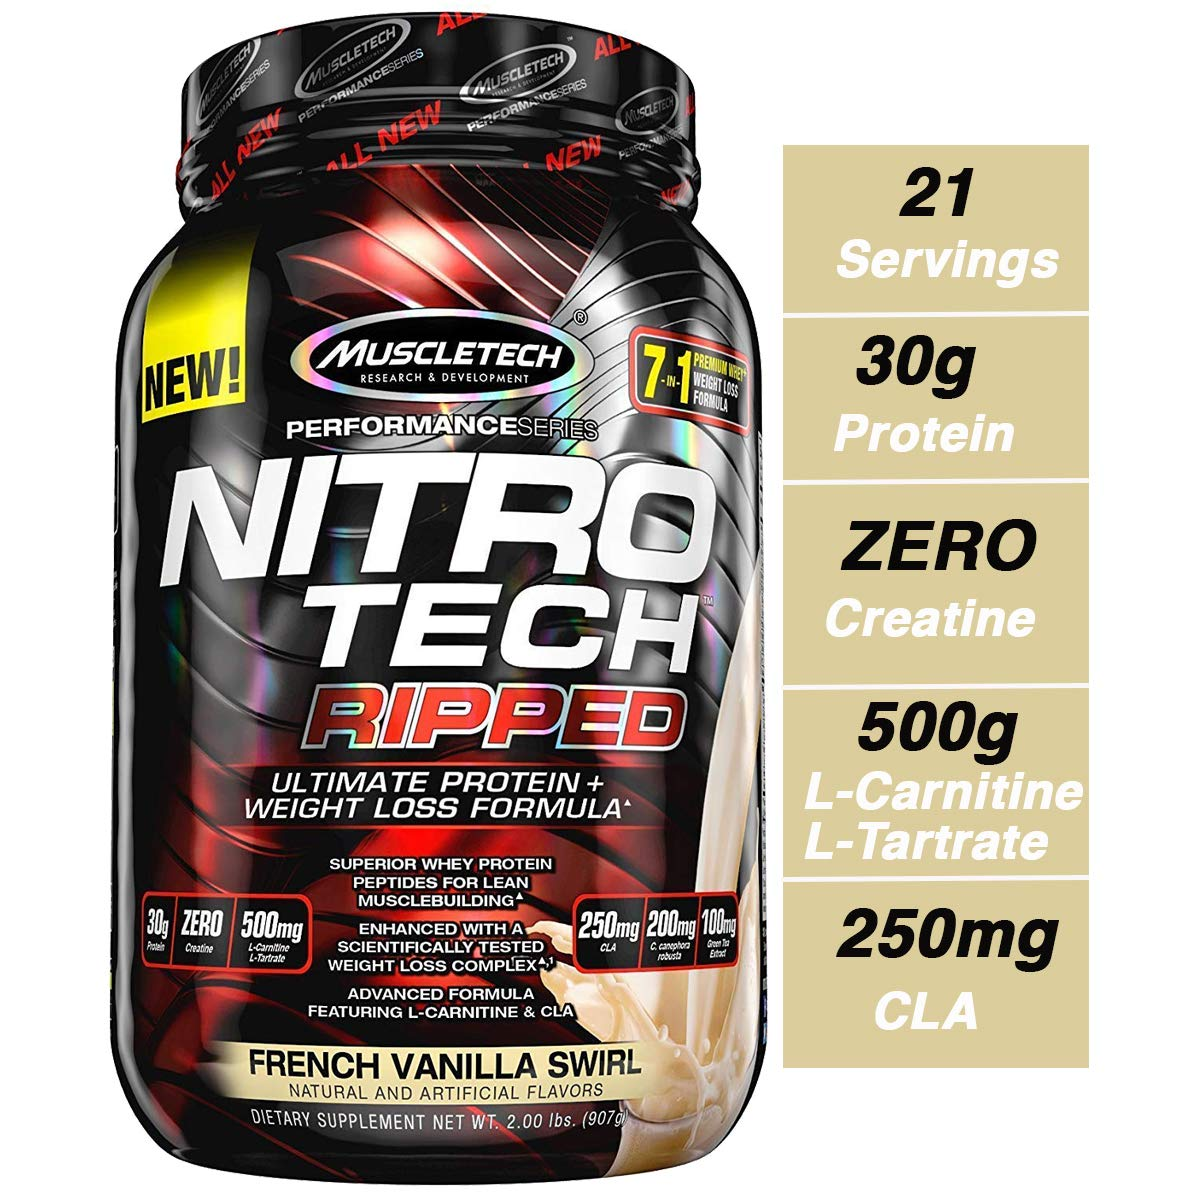 MuscleTech Nitro Tech Ripped Ultra Clean Whey Protein Isolate Powder + Weight Loss Formula, Low Sugar, Low Carb, French Vanilla Swirl, 2 Pounds by MuscleTech